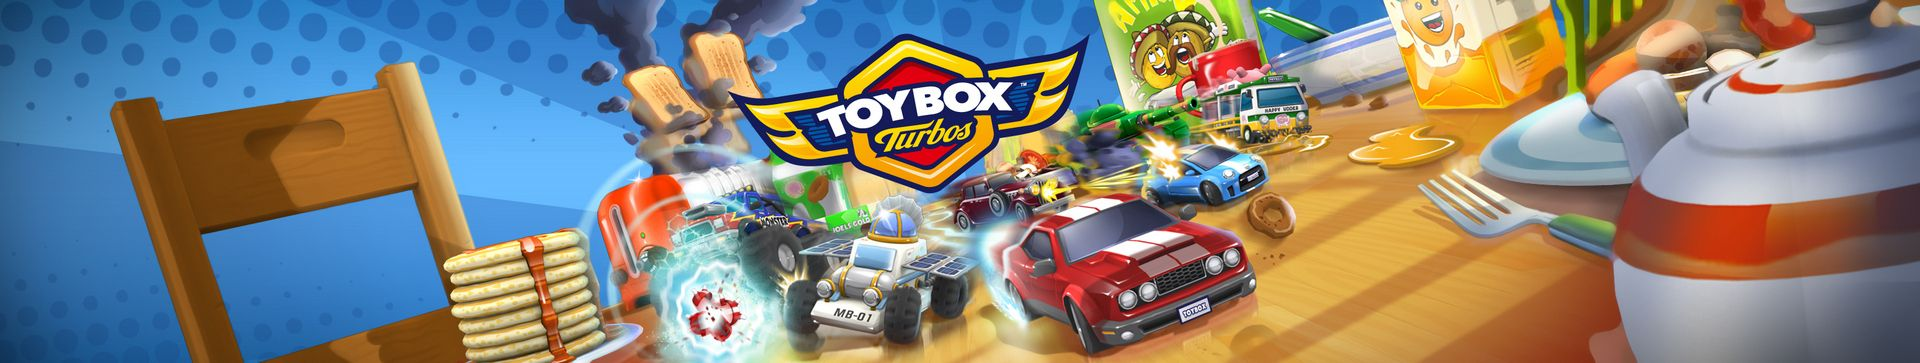 toy-box-turbos-1920x363